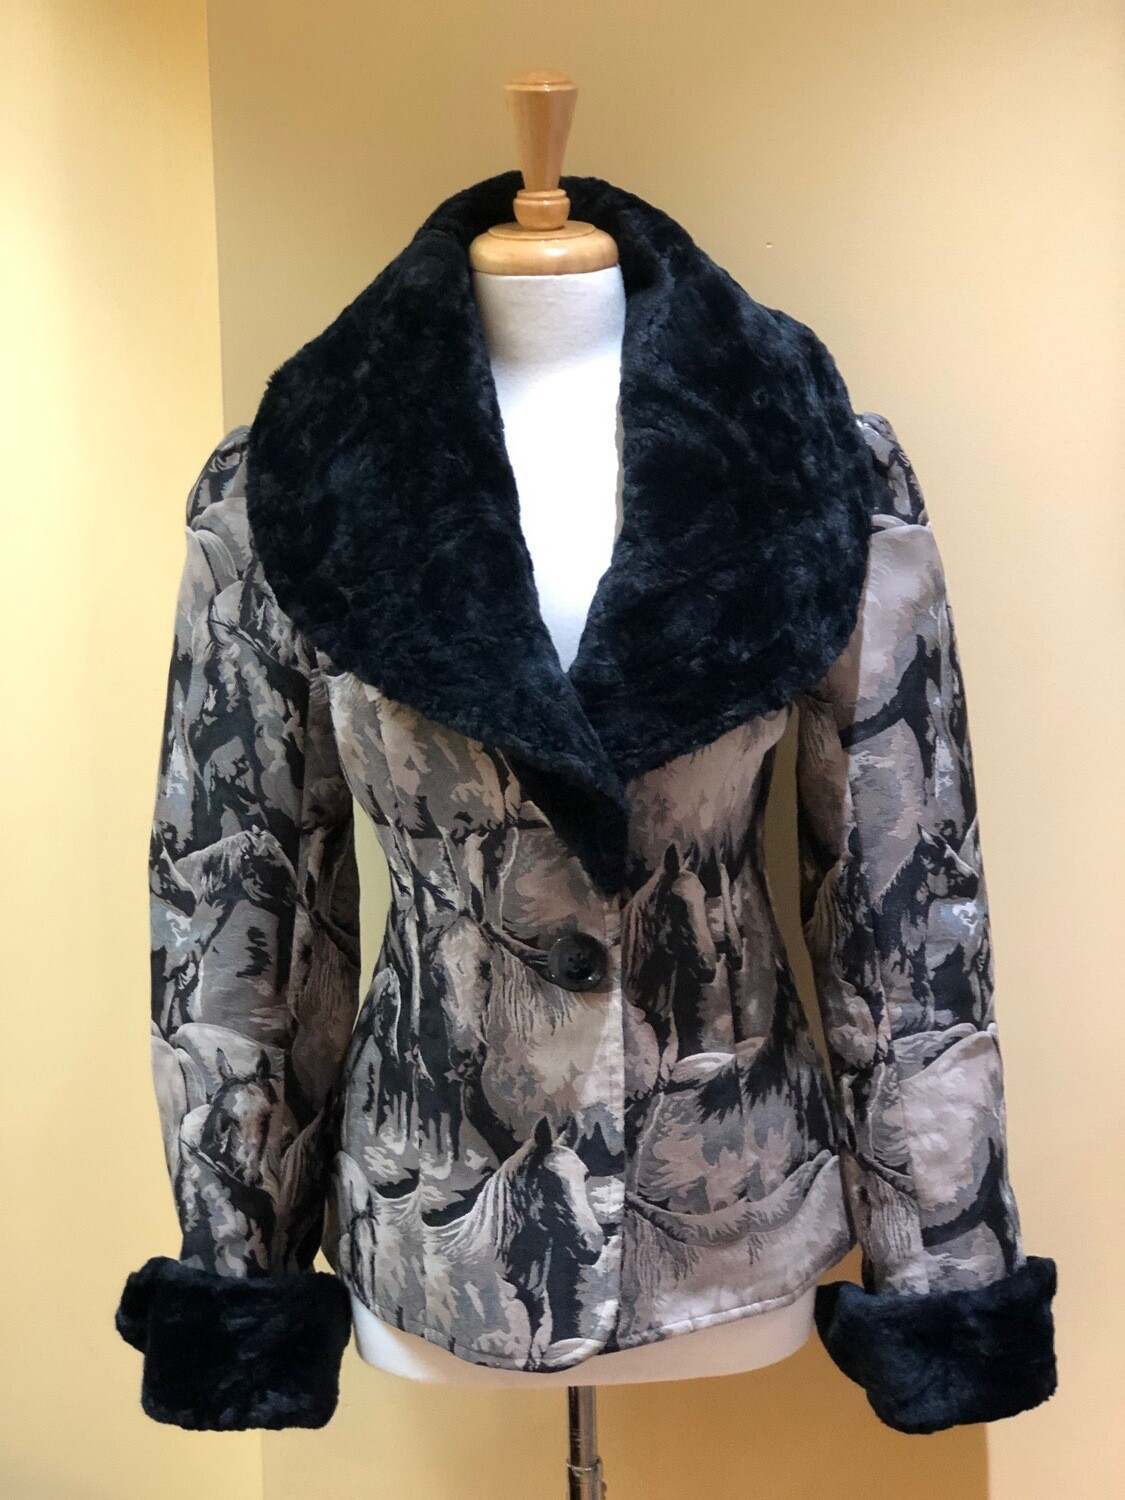 Horse Design Jacket with Faux Fur Chinchilla Collar + Cuffs